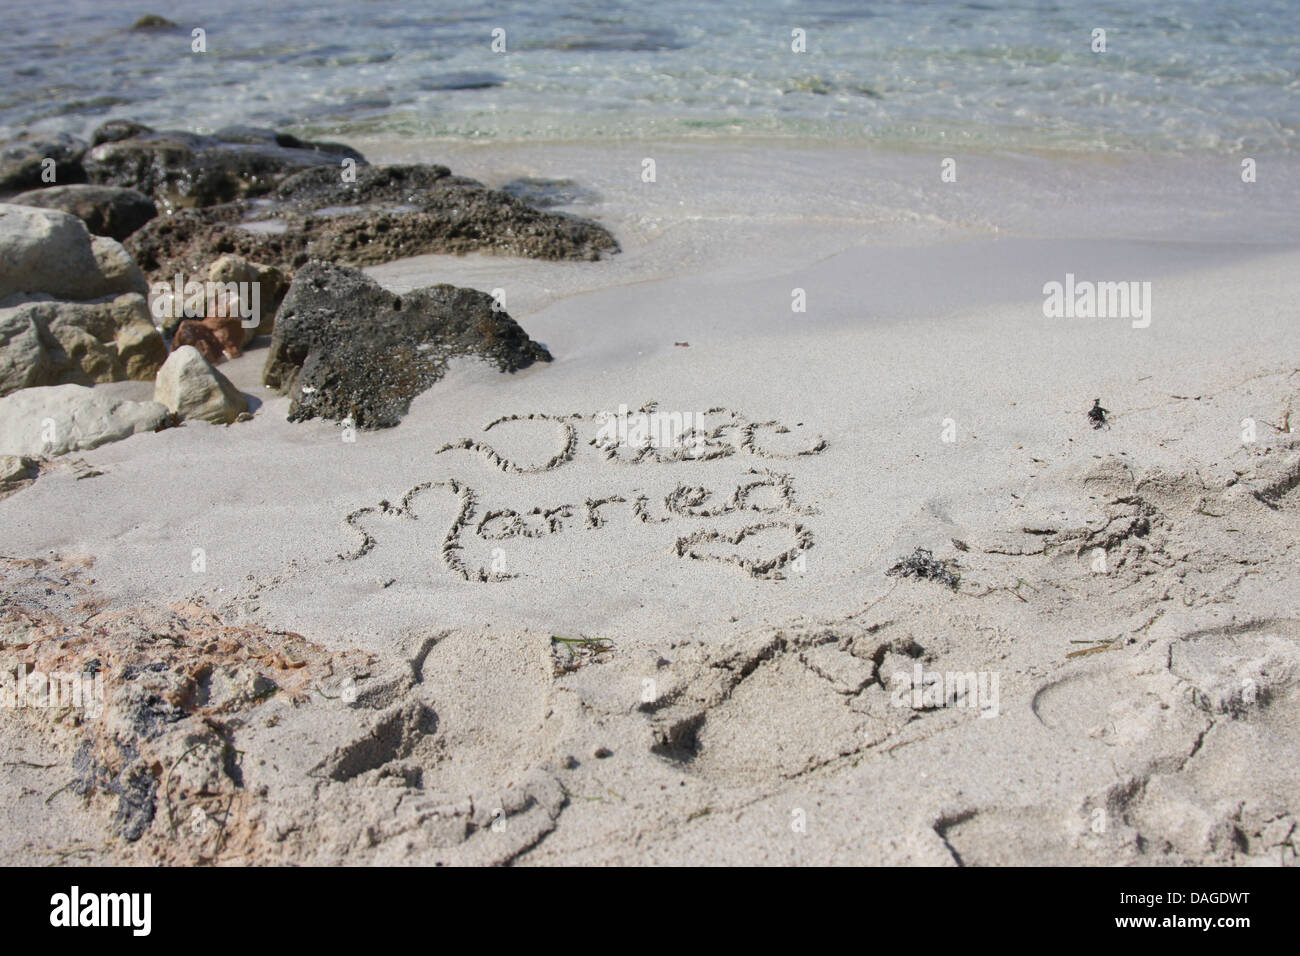 Just married in sand on beach - Stock Image